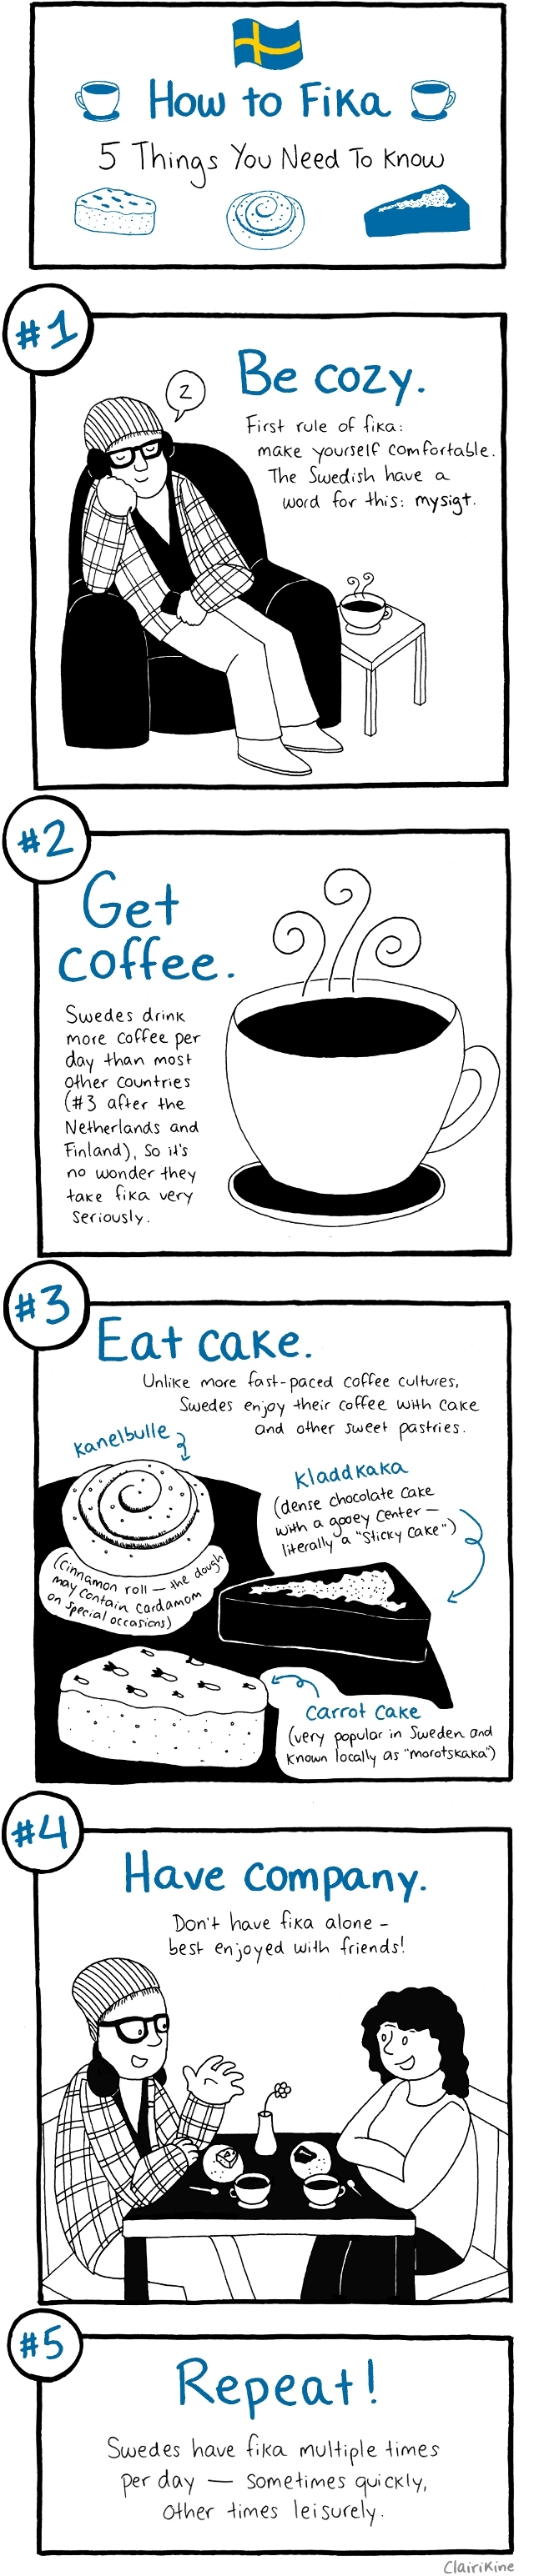 Swedish Coffee And Cake Culture